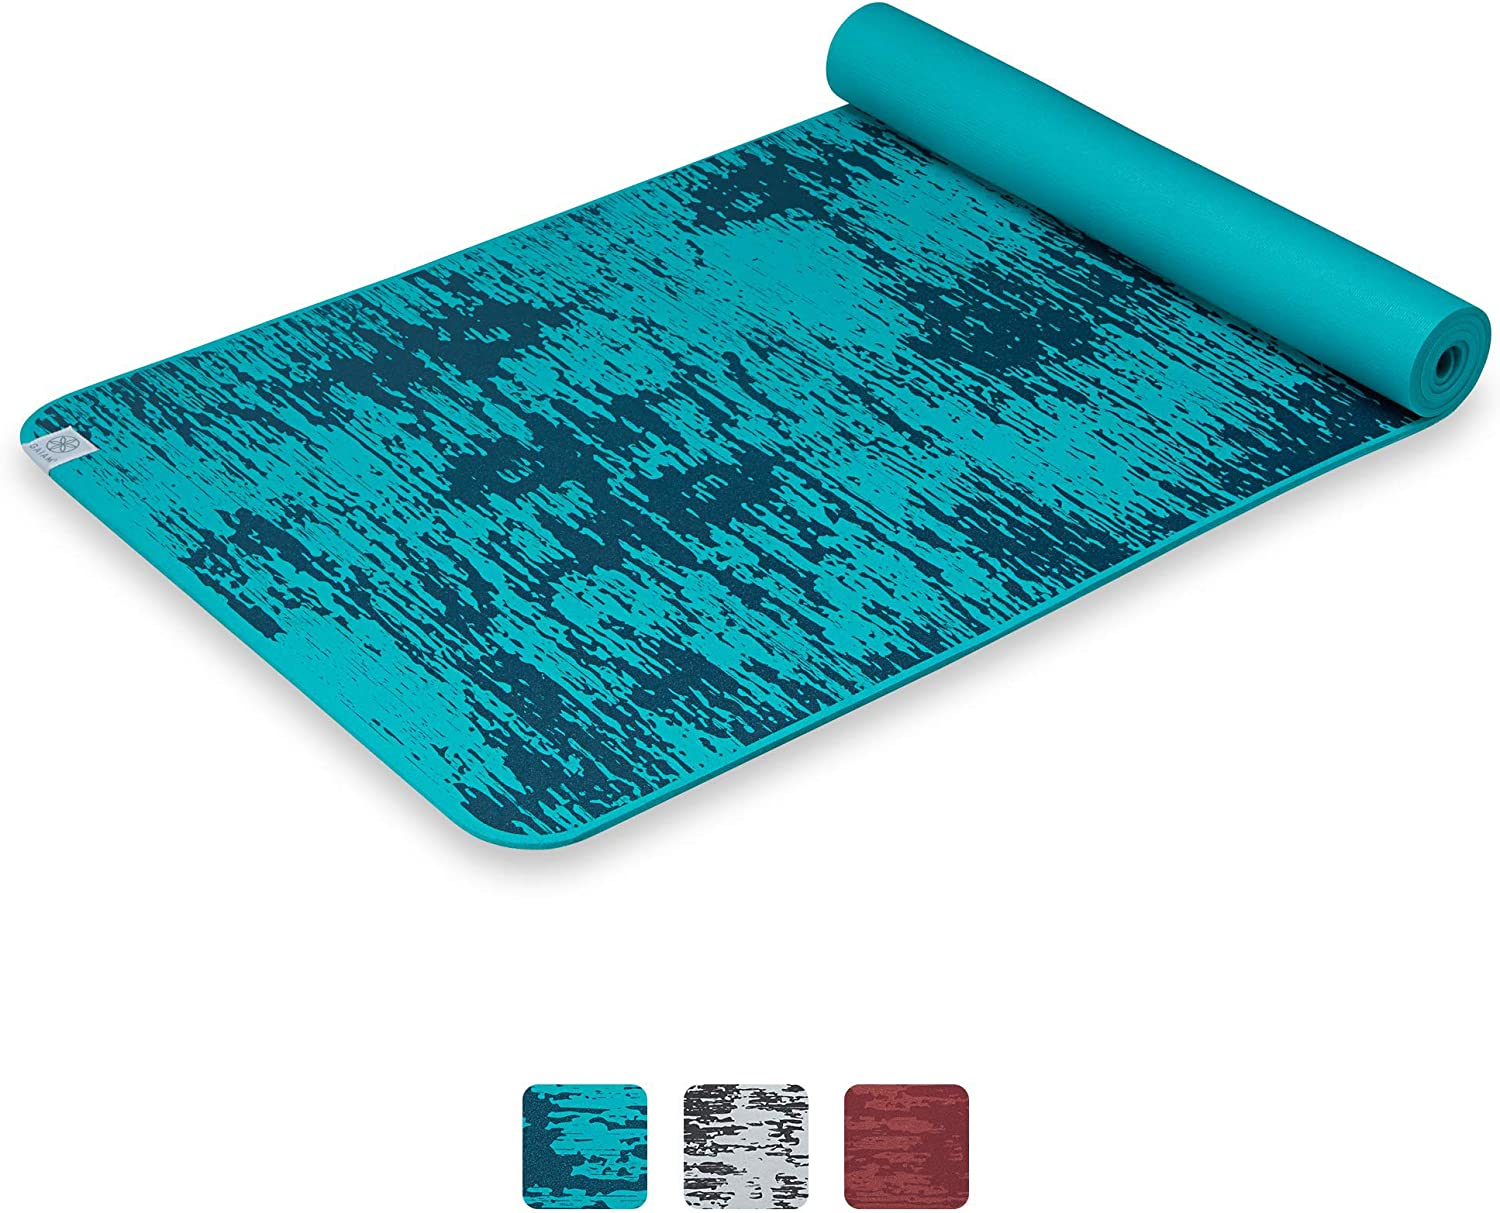 Amazon Com Gaiam Yoga Mat 6mm Insta Grip Extra Thick Dense Textured Non Slip Exercise Mat For All Types Of Yoga Floor Workouts 68 L X 24 W X 6mm